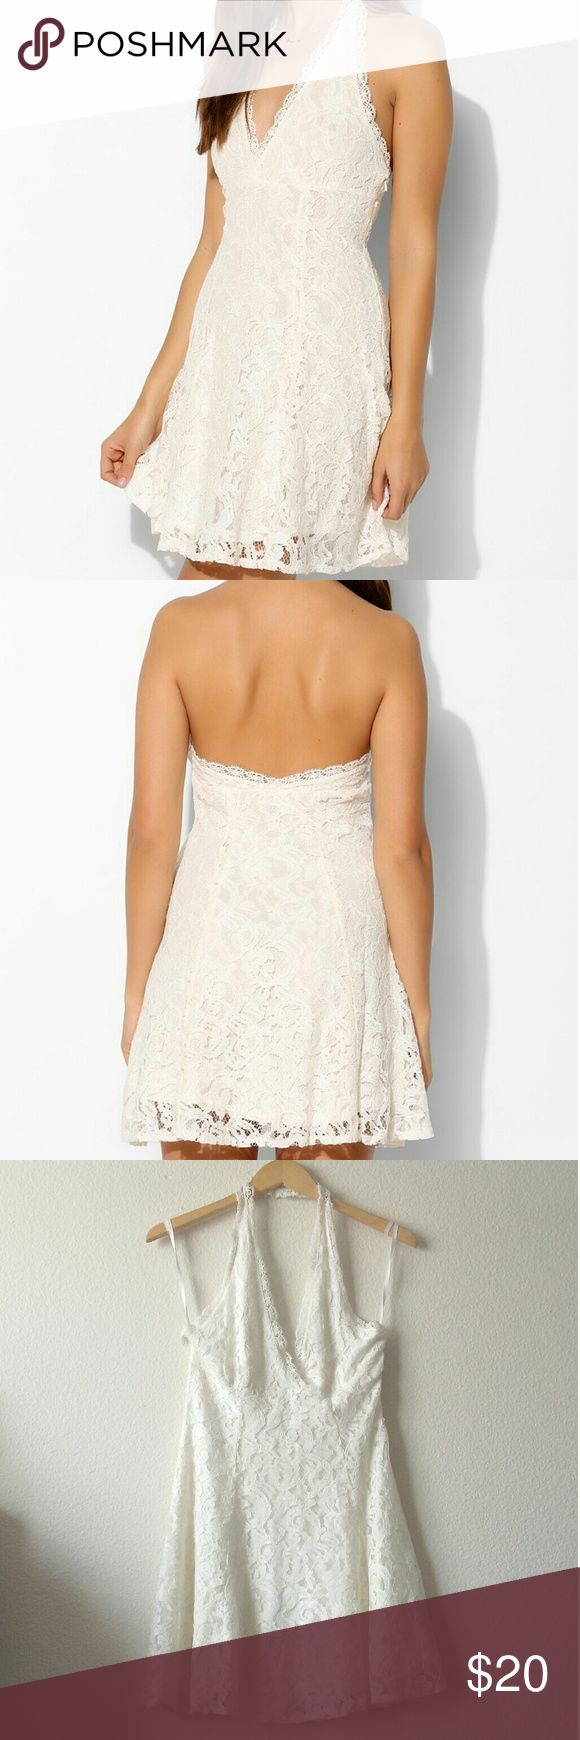 UO Kimchi Blue ivory lace halter dress (NWOT) Ivory lace halter mini dress from Urban Outfitters with a hidden side zipper. Size medium. New without tags. Length approx. 38, bust 17, waist approx. 14.  Please note: There are some loose threads located near the hidden zipper (under the left bustline) from where the dress has apparently snagged on something. Please refer to the sixth photo. Urban Outfitters Dresses Mini